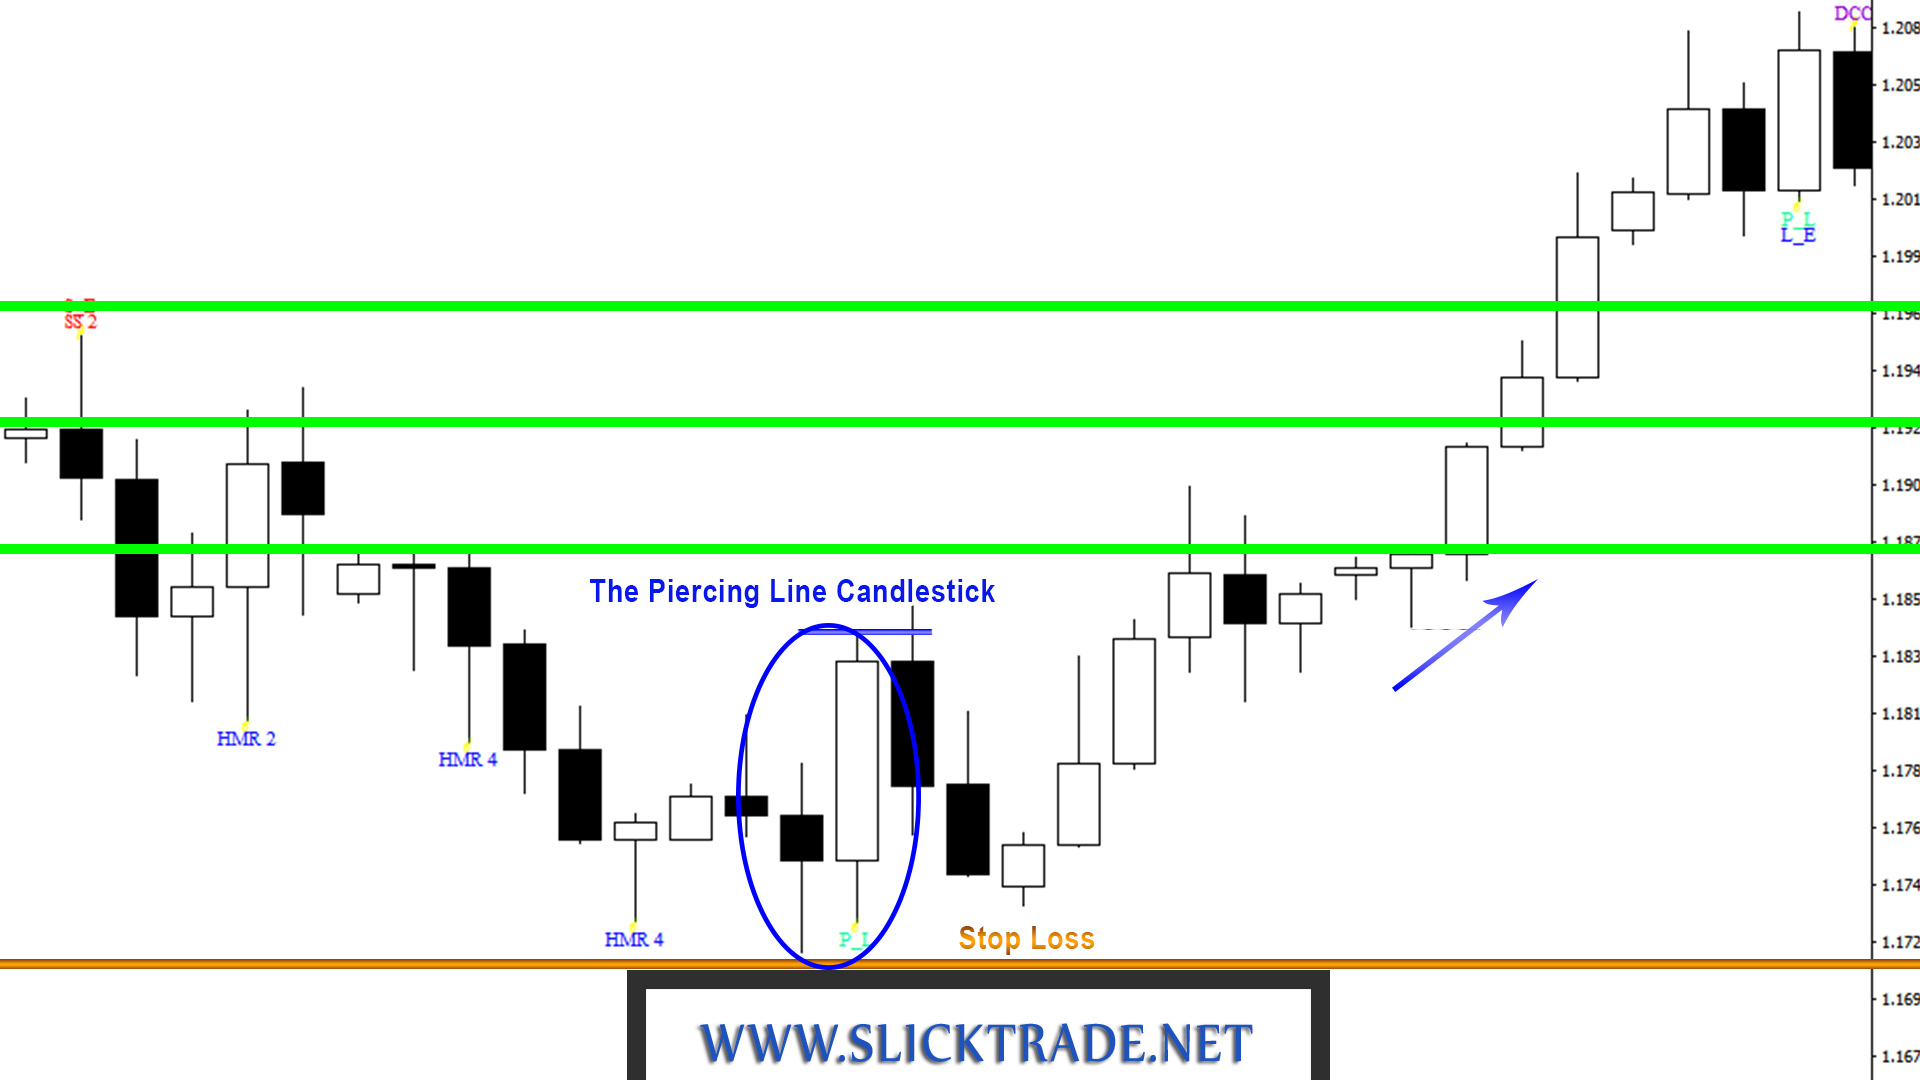 Candlestick Patterns - Piercing Line 3